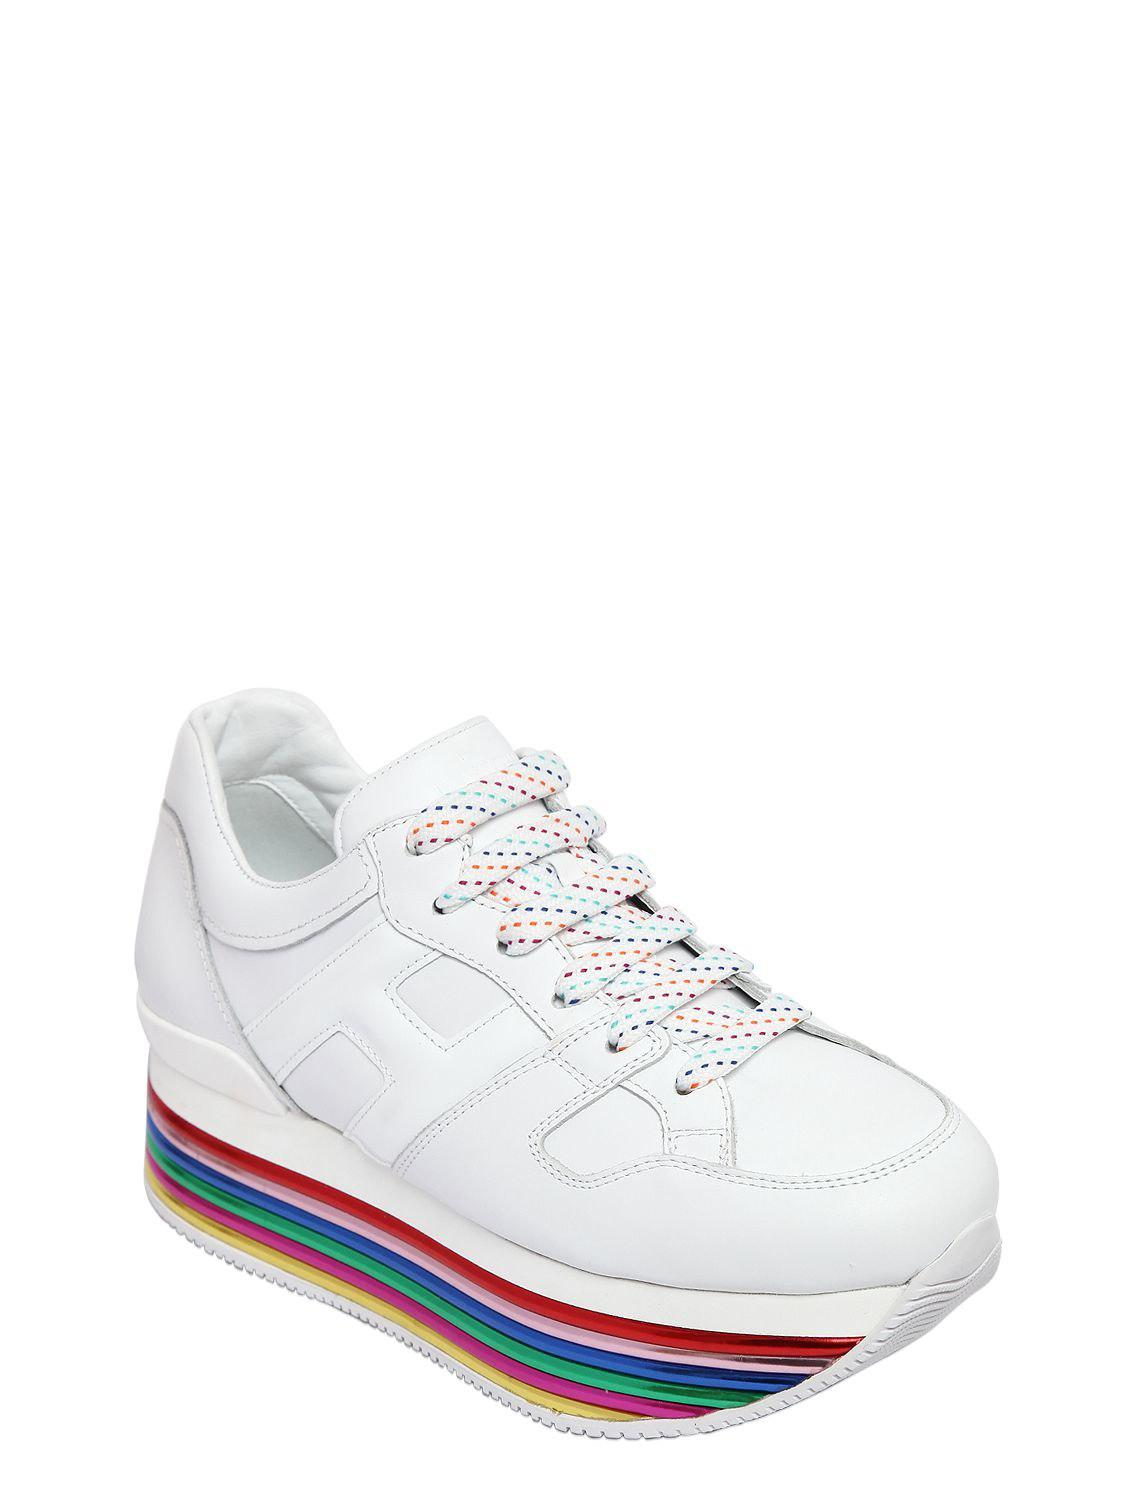 Hogan 70MM MAXI 222 MIGNON LEATHER SNEAKERS Affordable Sale Fashionable Footlocker Finishline For Sale iUY5xW